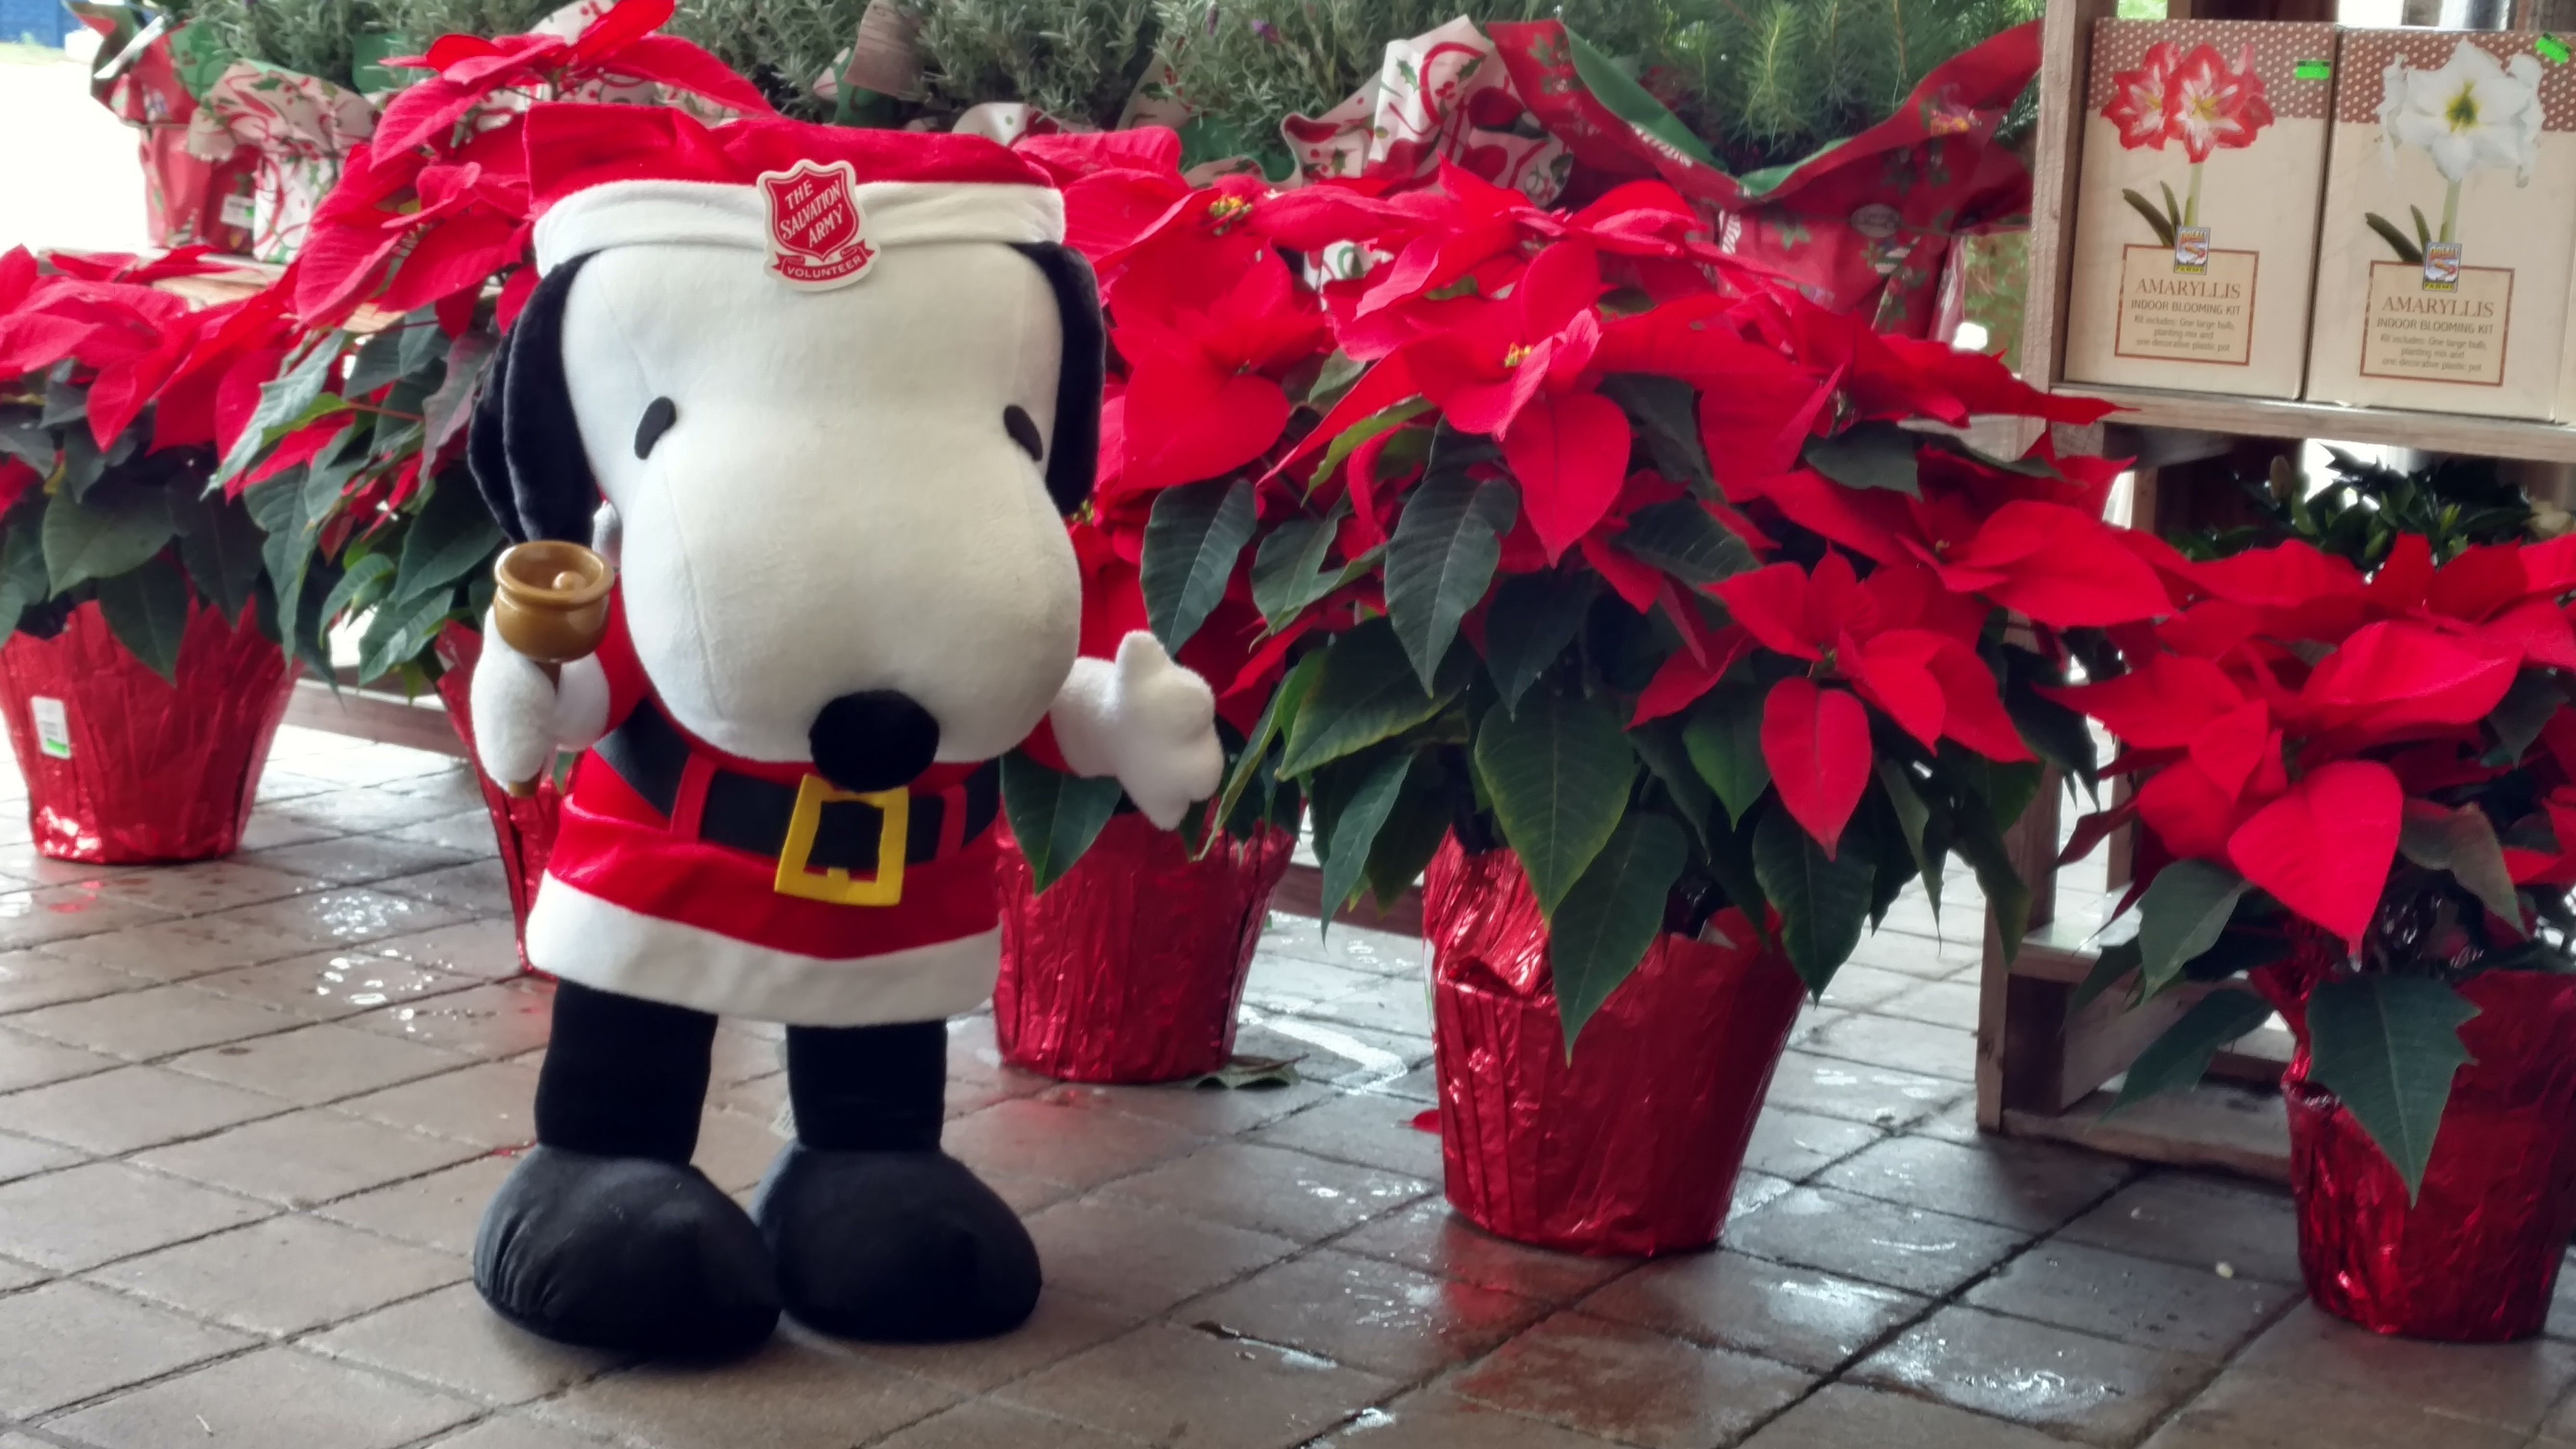 Snoopy Is Loving The Poinsettias Our Floral Dept Has To Offer Adraegersholiday Deckthehalls Deck The Halls Adra Poinsettia